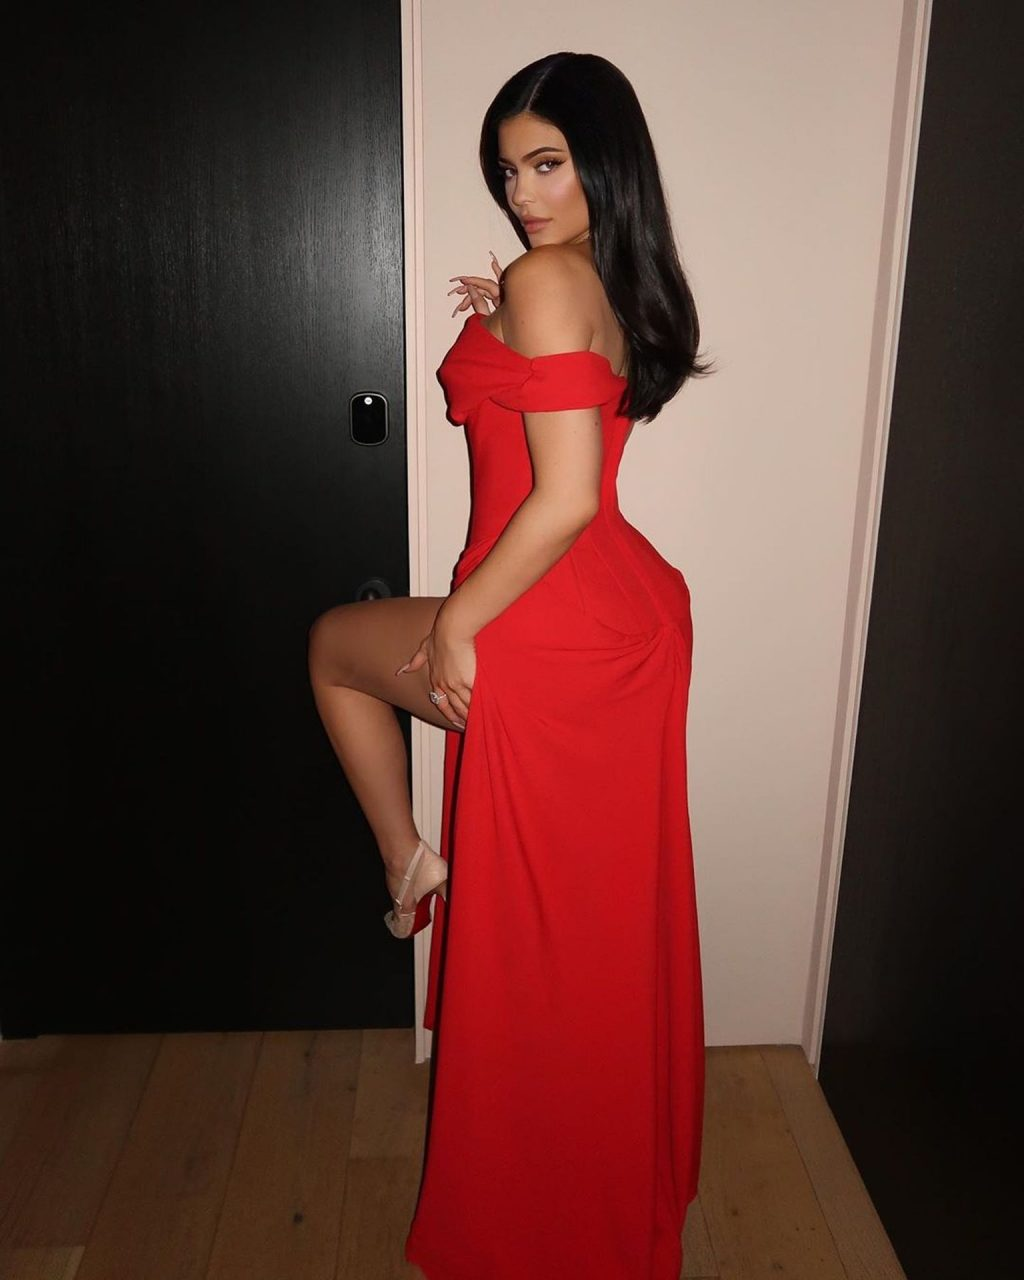 Kylie Jenner Looks Stunning In A Full Length Red Dress (14 Photos)